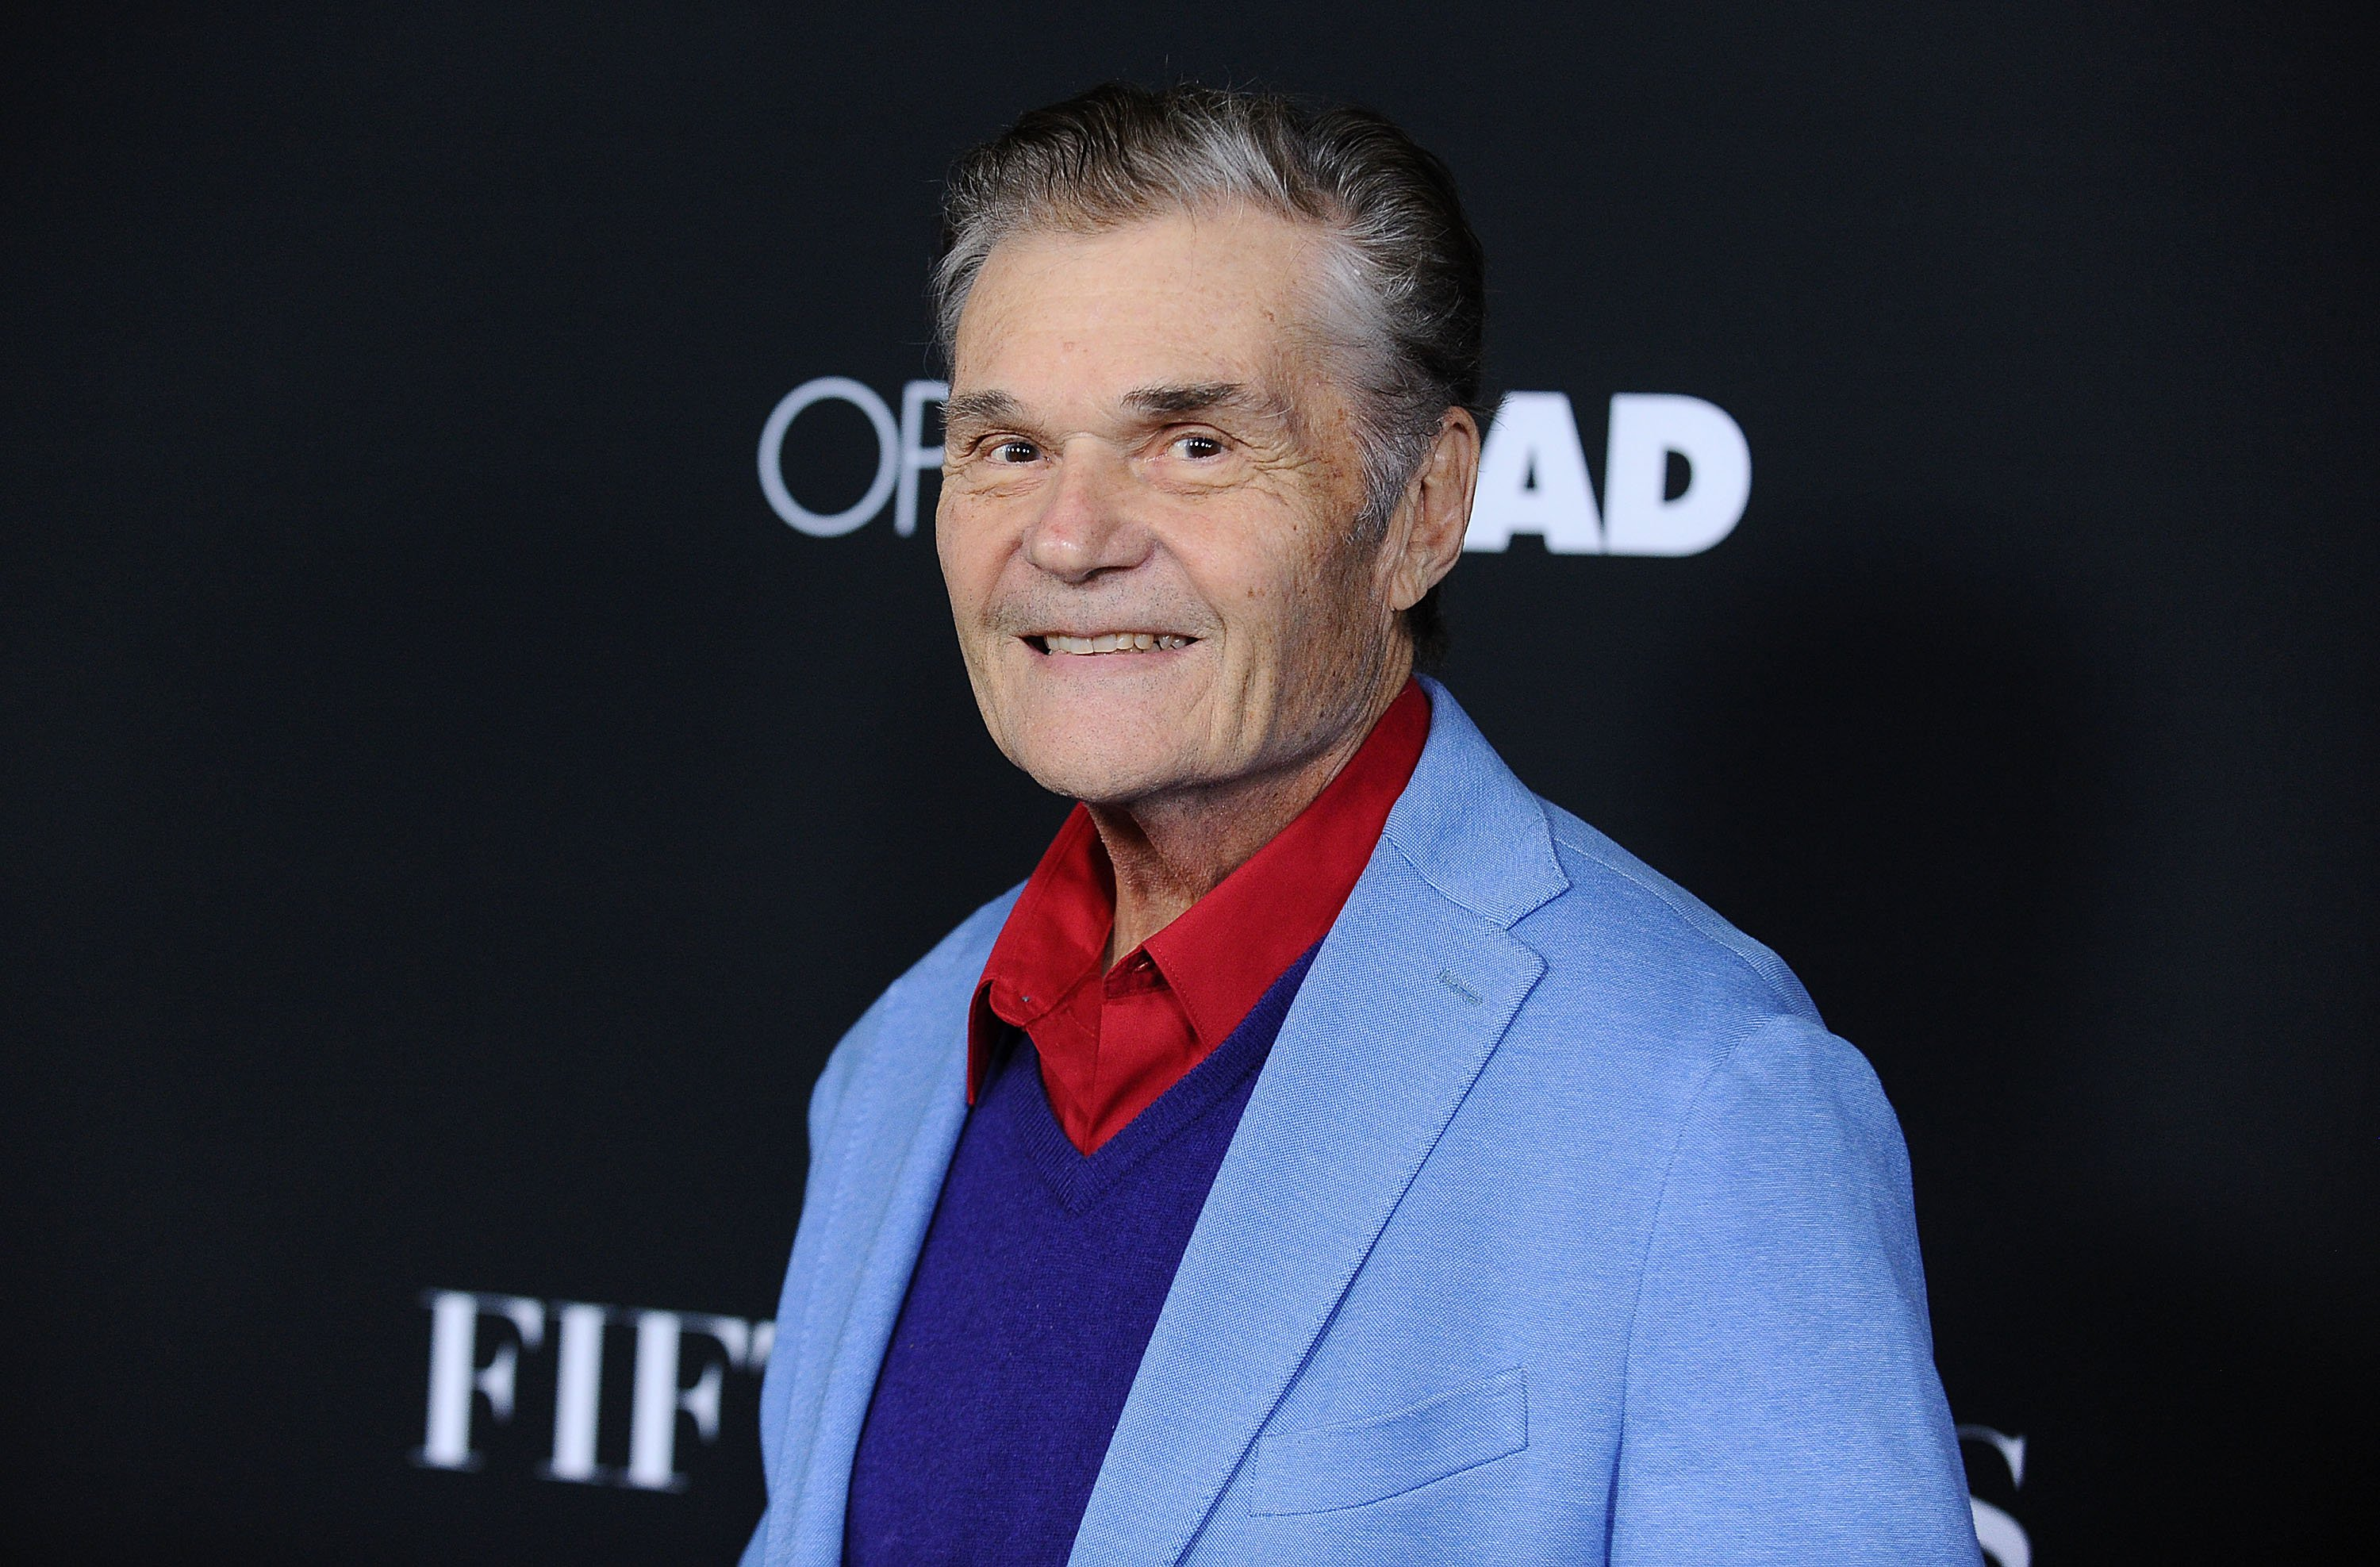 """Fred Willard attends the premiere of """"Fifty Shades of Black"""" on January 26, 2016, in Los Angeles, California.   Source: Getty Images."""